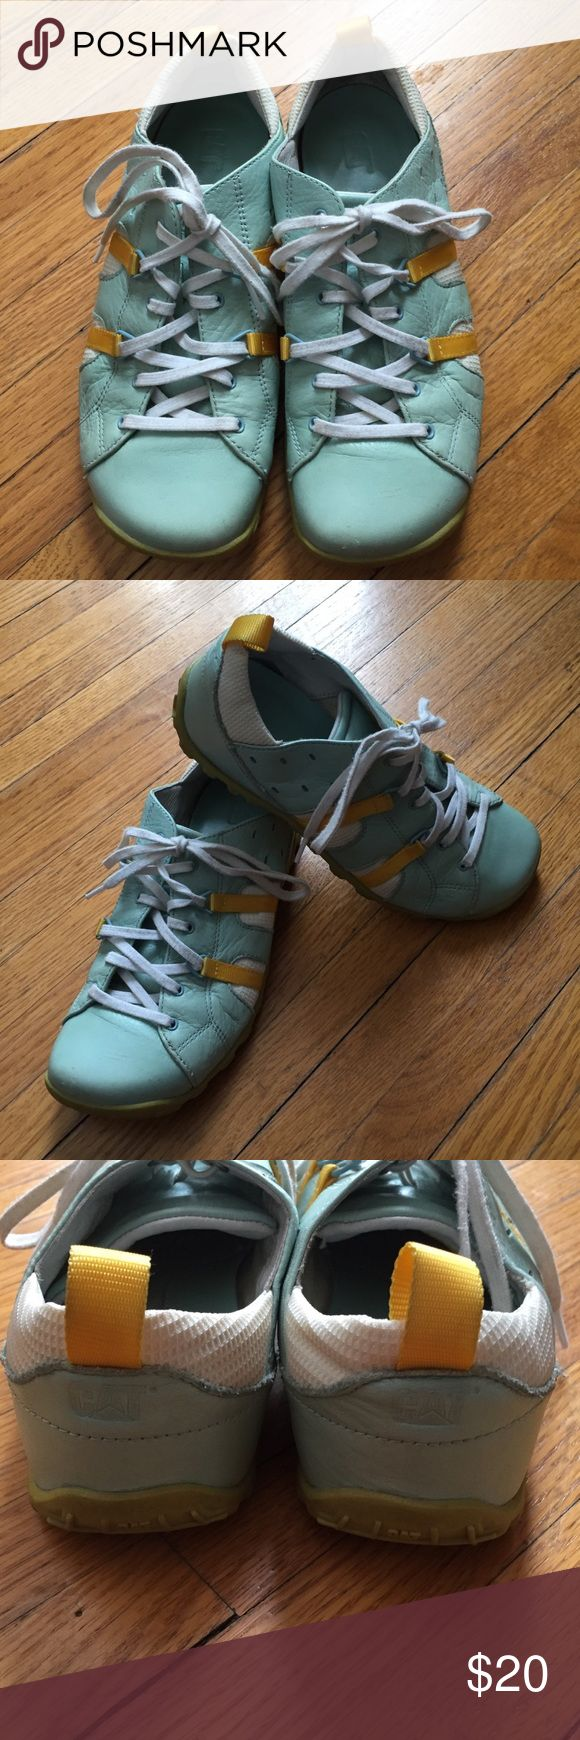 CAT Shoes Super cute and fun shoes. Very comfortable for walking or shopping.  Gently used. Caterpillar Shoes Sneakers